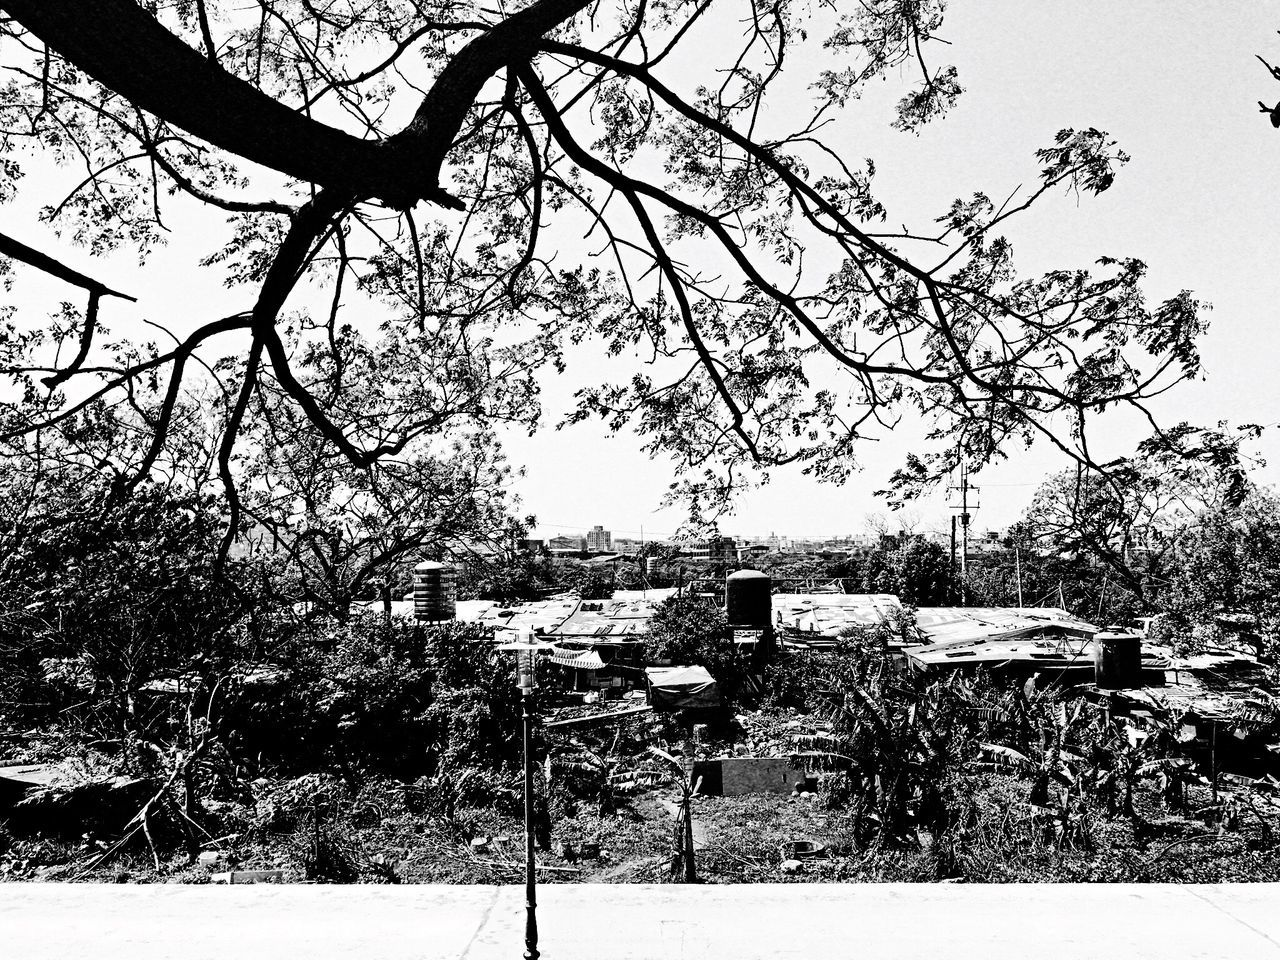 Chinaberry。 EyeEm Gallery EyeEm Best Shots - Black + White The Tourist Taking Photos Hello World Everything In Its Place How Do We Build The World? TOWNSCAPE Tree Flower Enjoying Life Nature Photography Nature_collection Sanxia